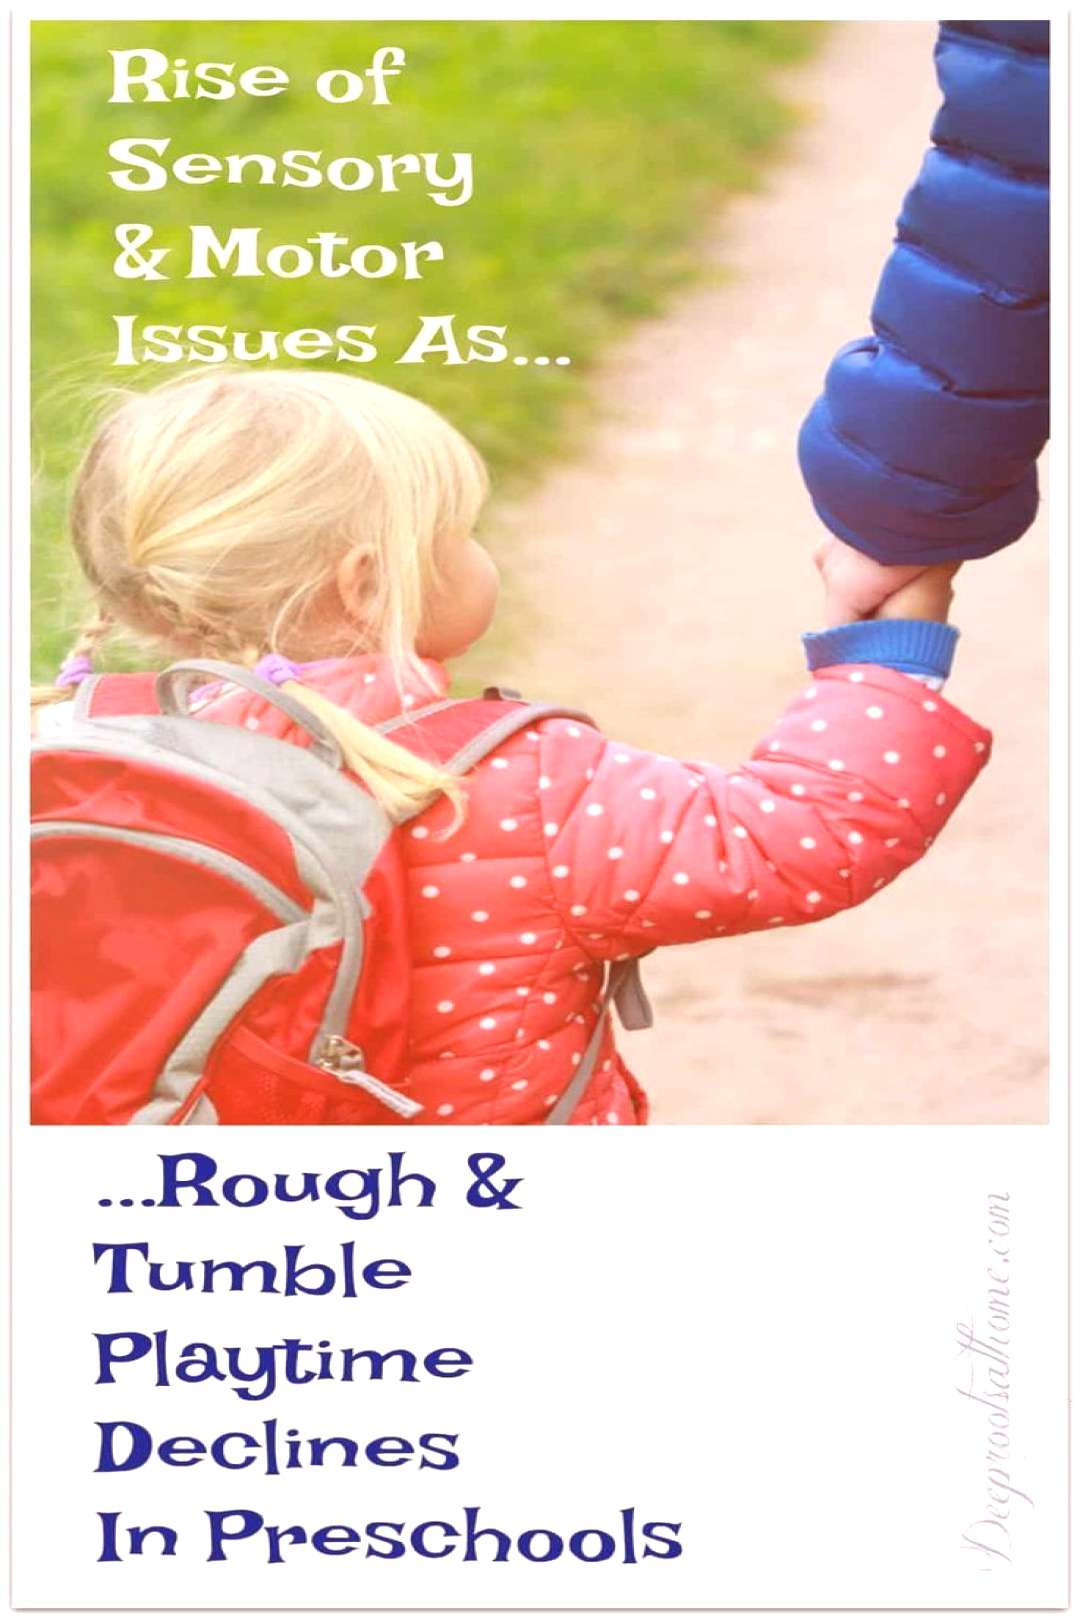 Rise of Sensory/Motor Issues as Rough/Tumble Play in Preschool Declines. See damage that occurs whe